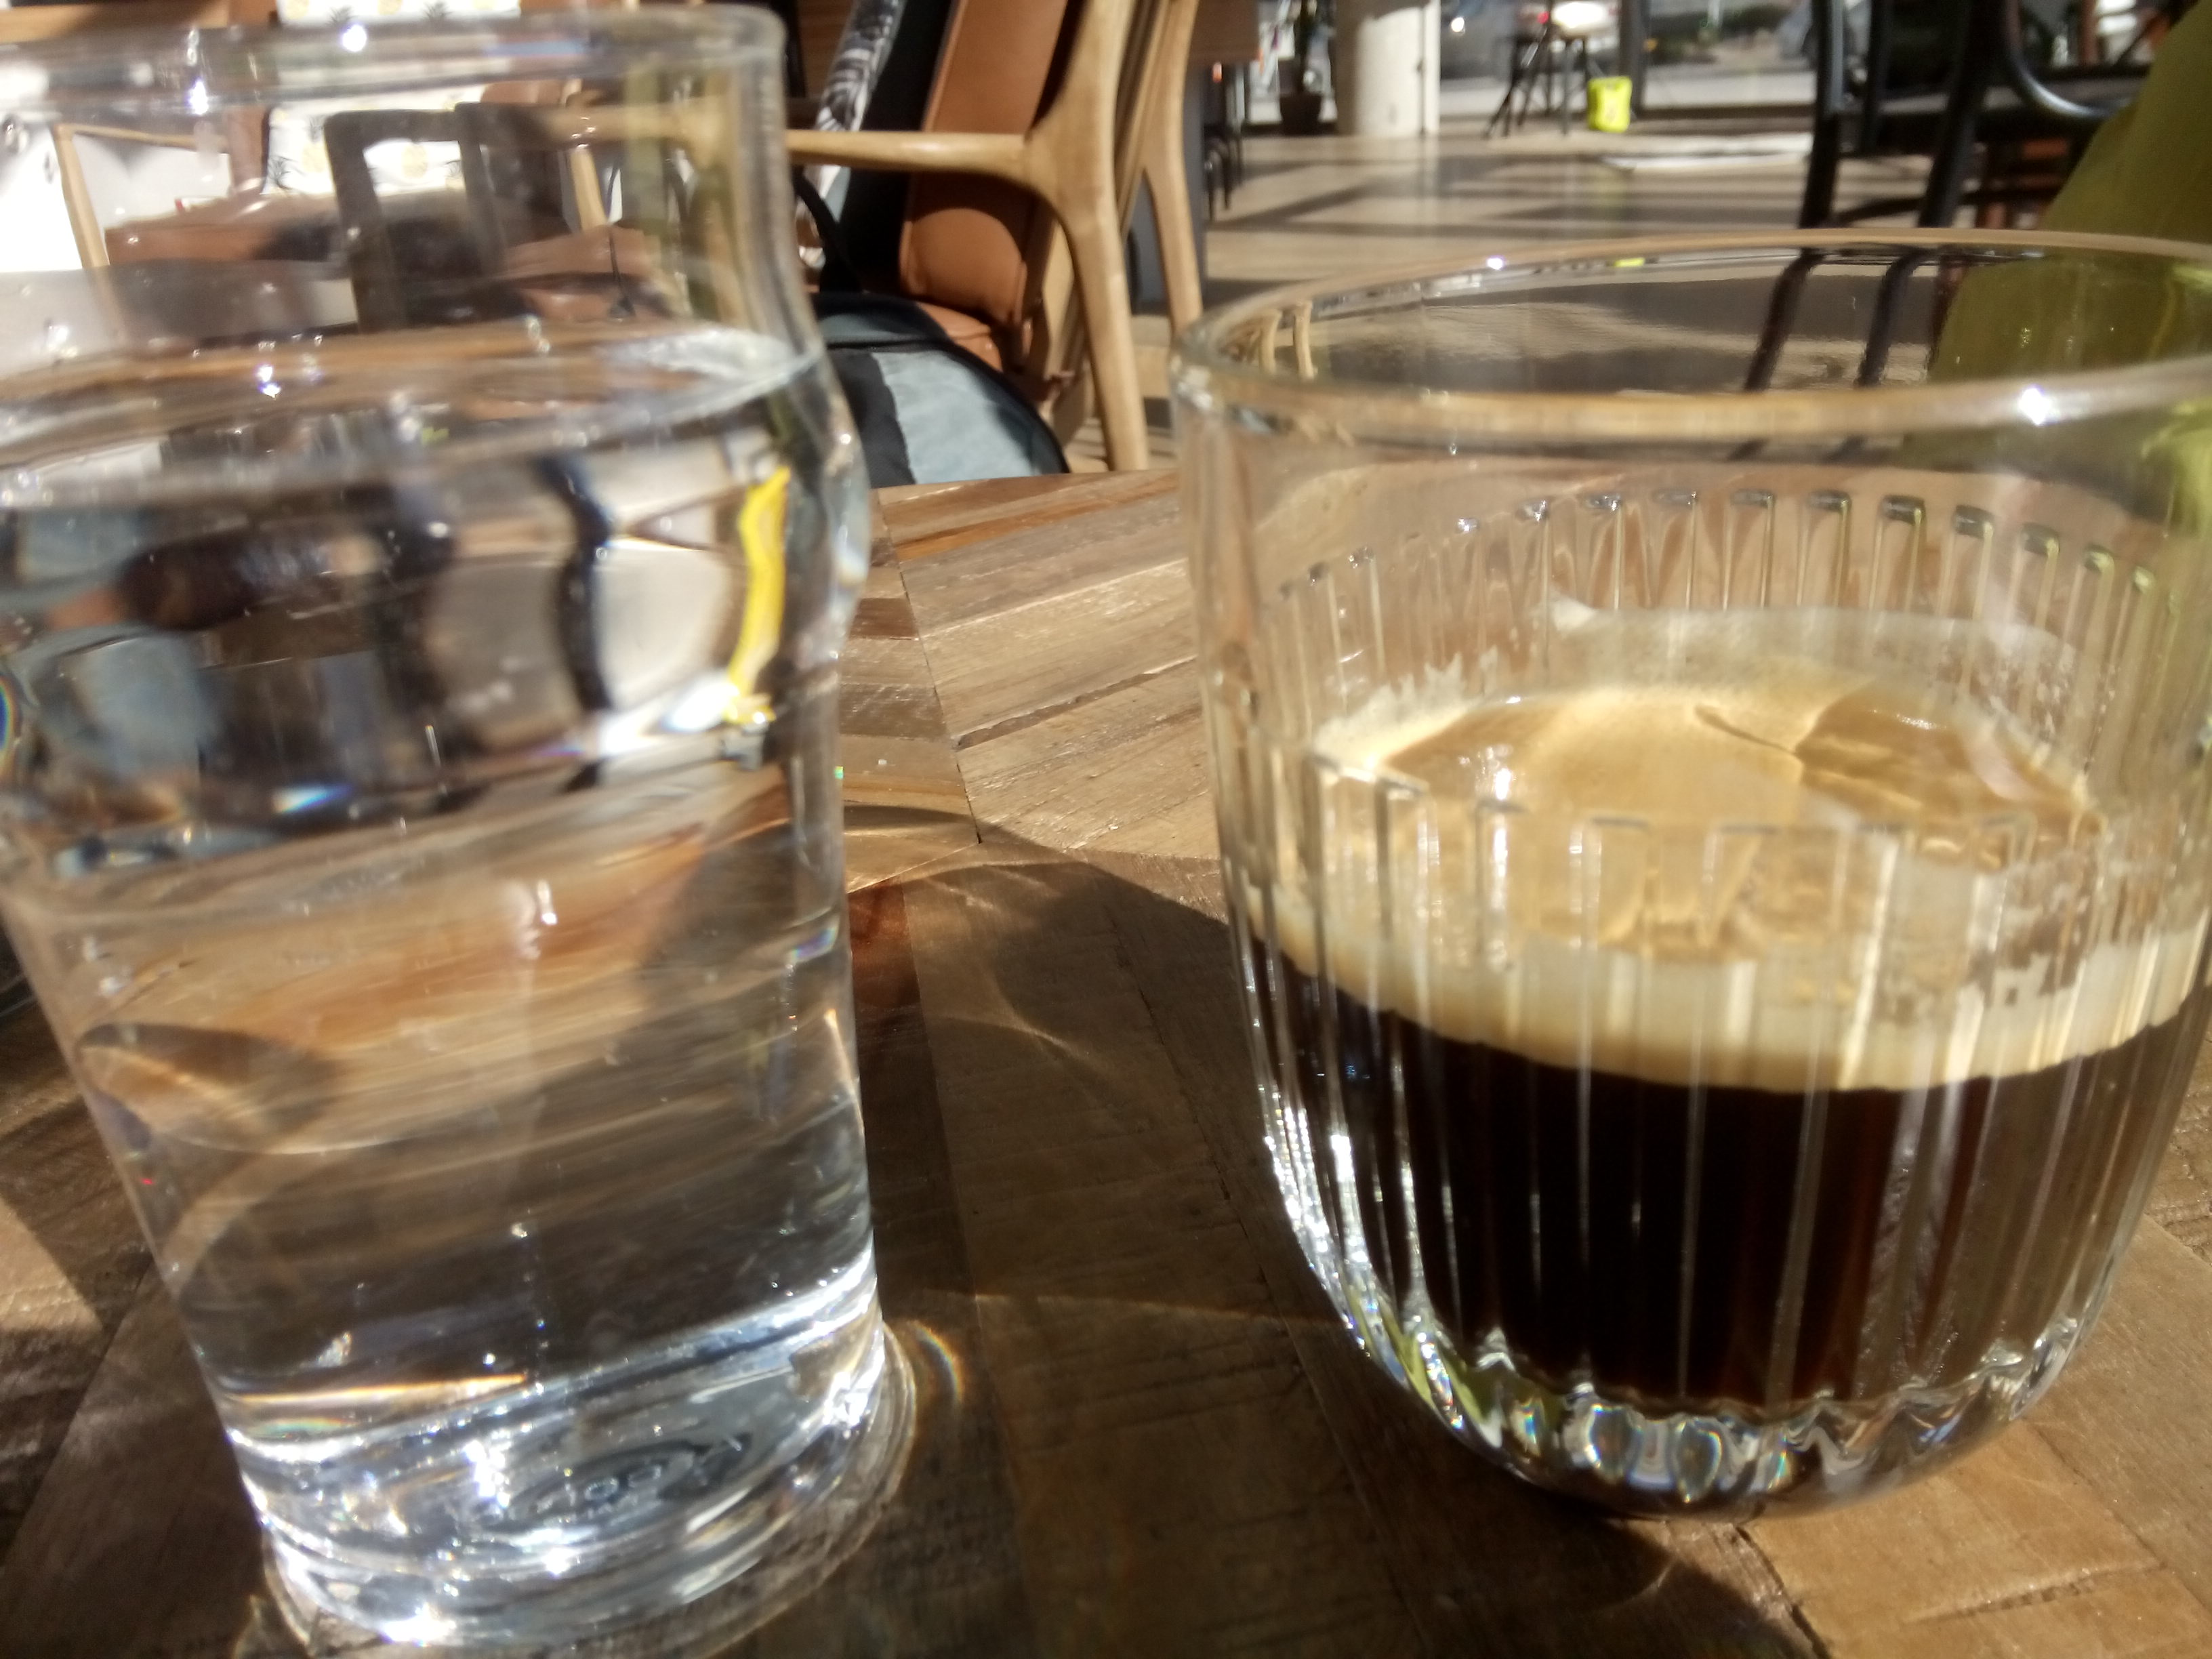 A glass of water on the left and a glass of dark espresso on the right, on a wooden table, with light refracting around and through